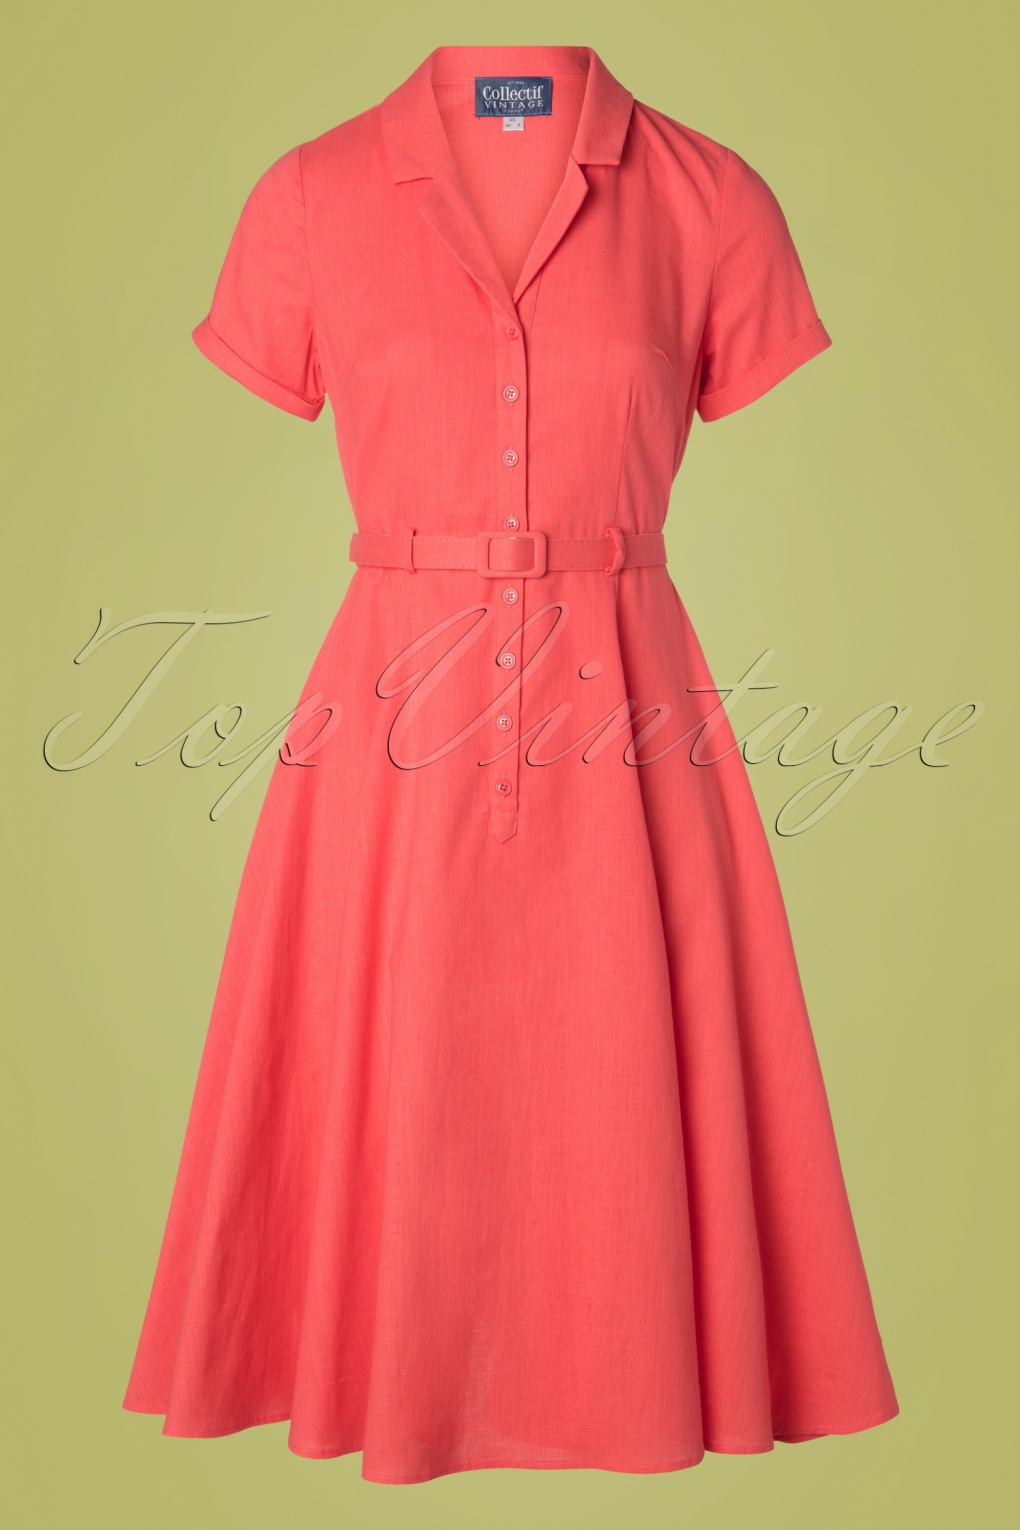 Vintage Tea Dresses, Floral Tea Dresses, Tea Length Dresses 50s Caterina Swing Dress in Coral Pink £72.01 AT vintagedancer.com